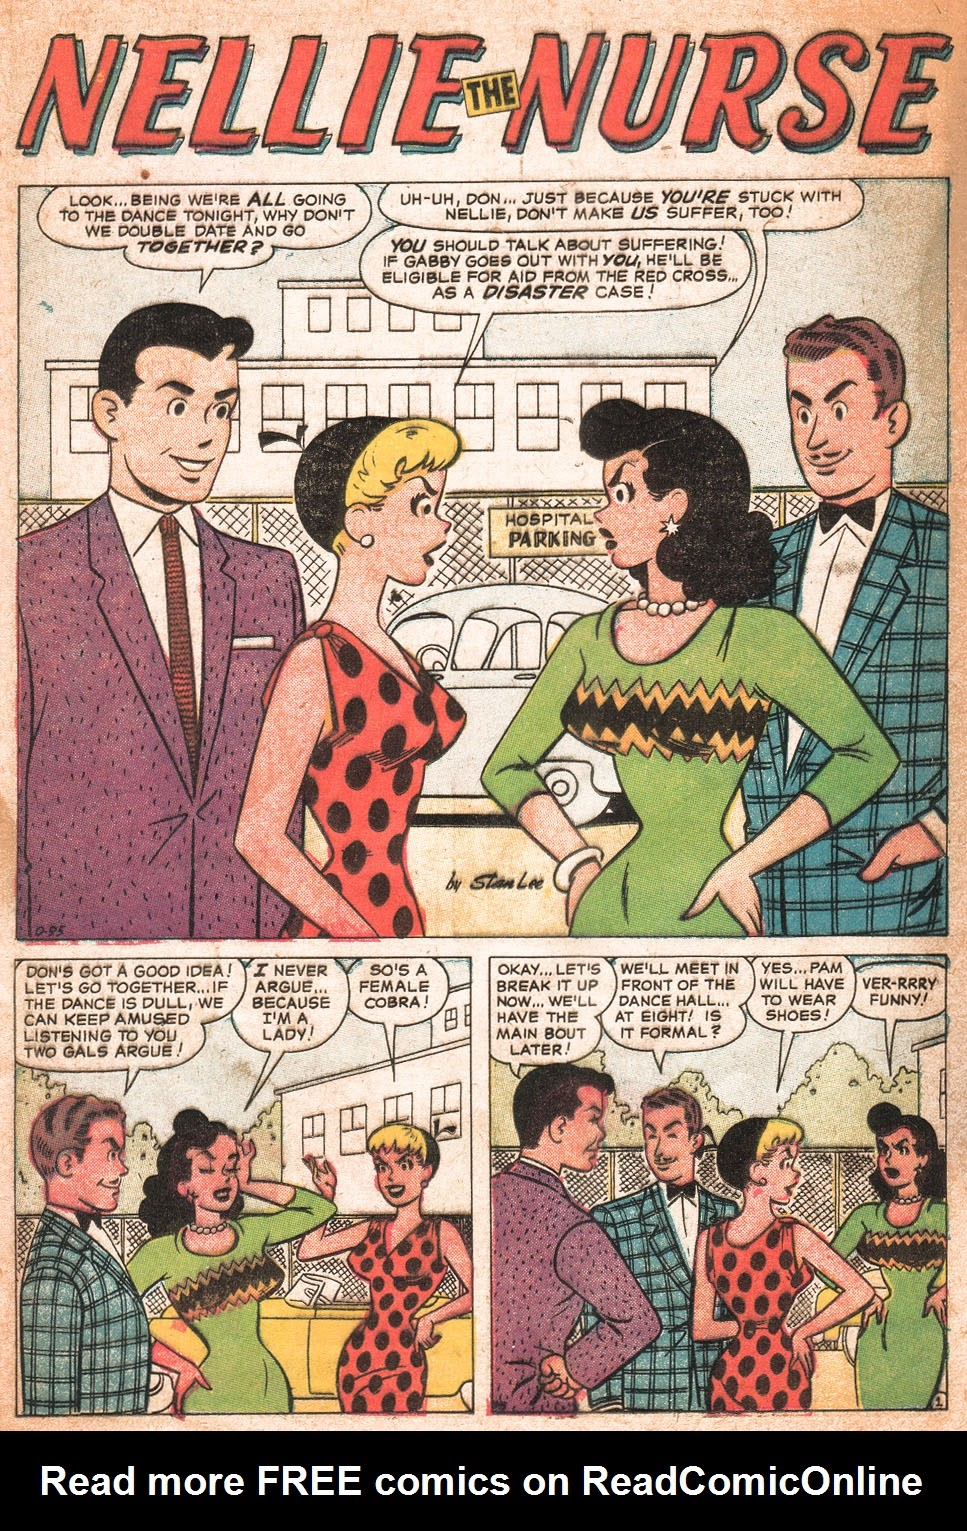 Read online Nellie The Nurse (1957) comic -  Issue # Full - 13